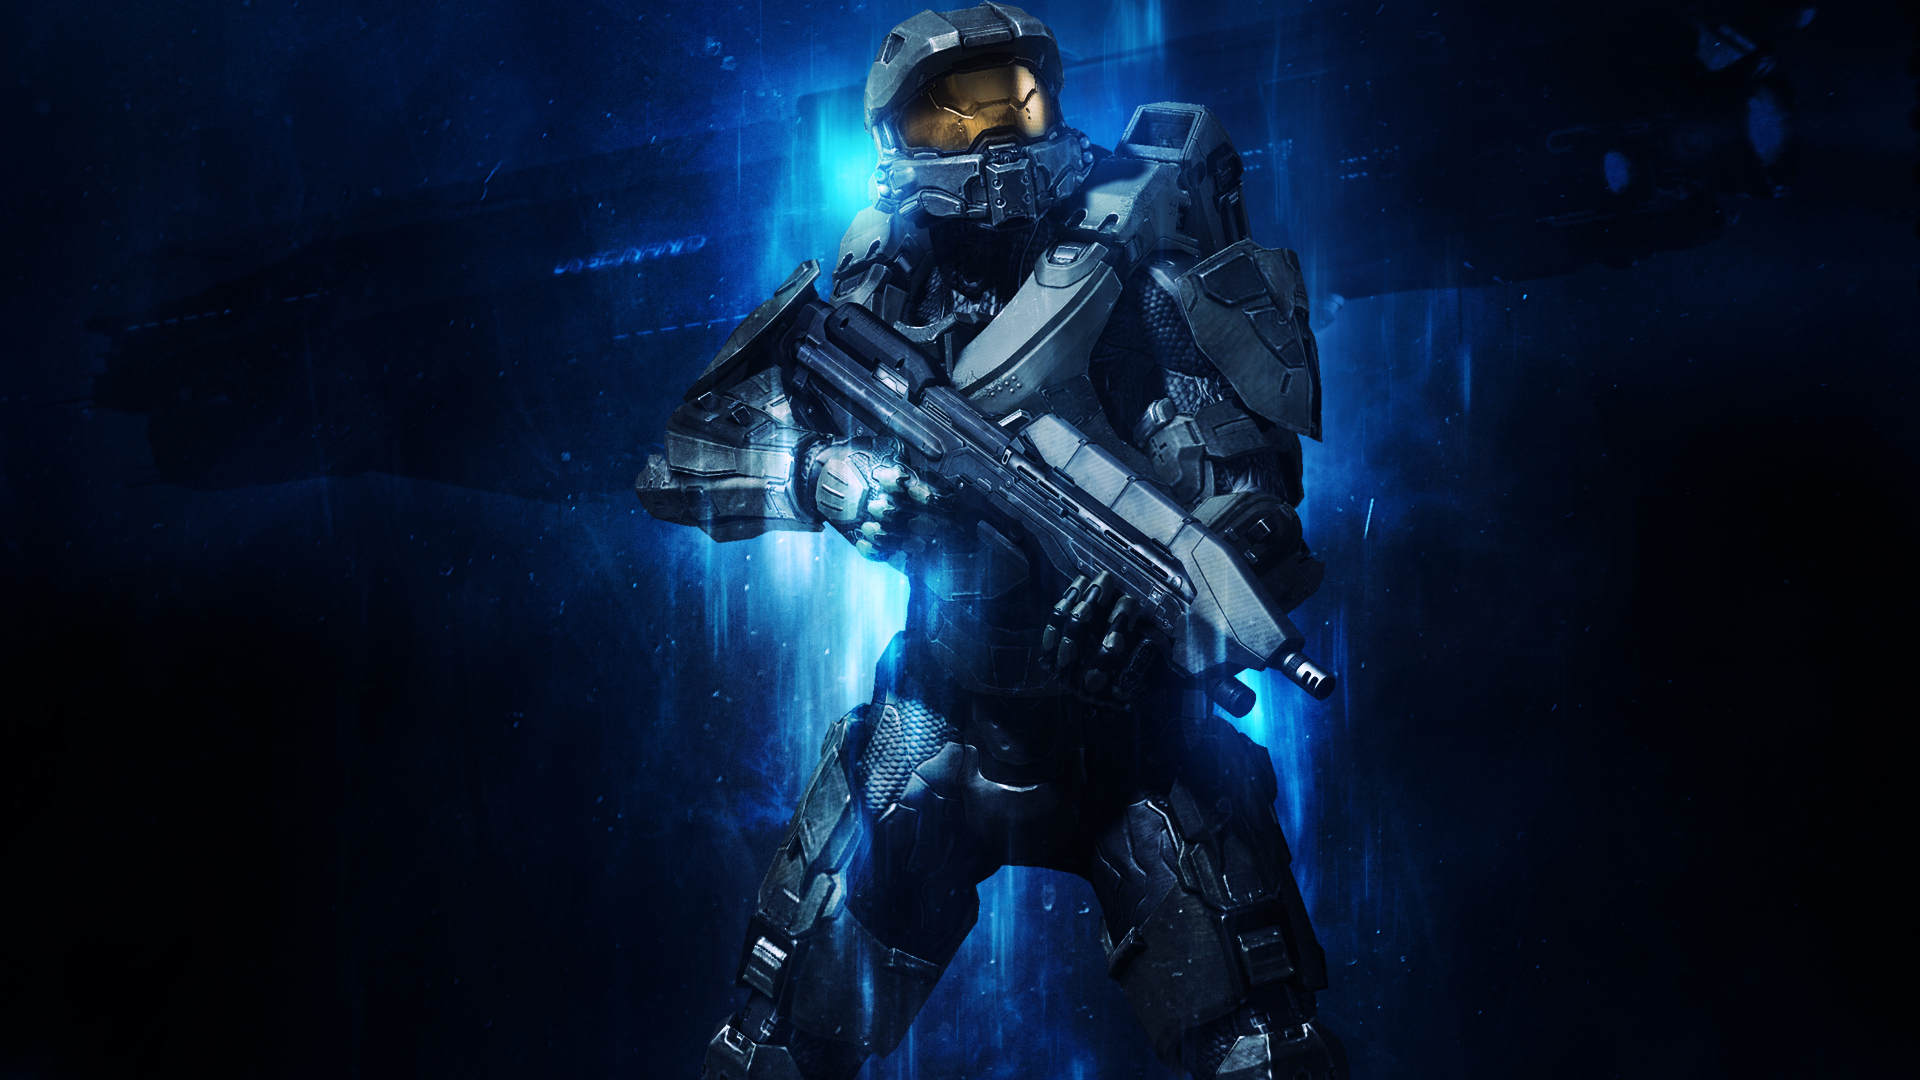 wallpaper free game halo - photo #4